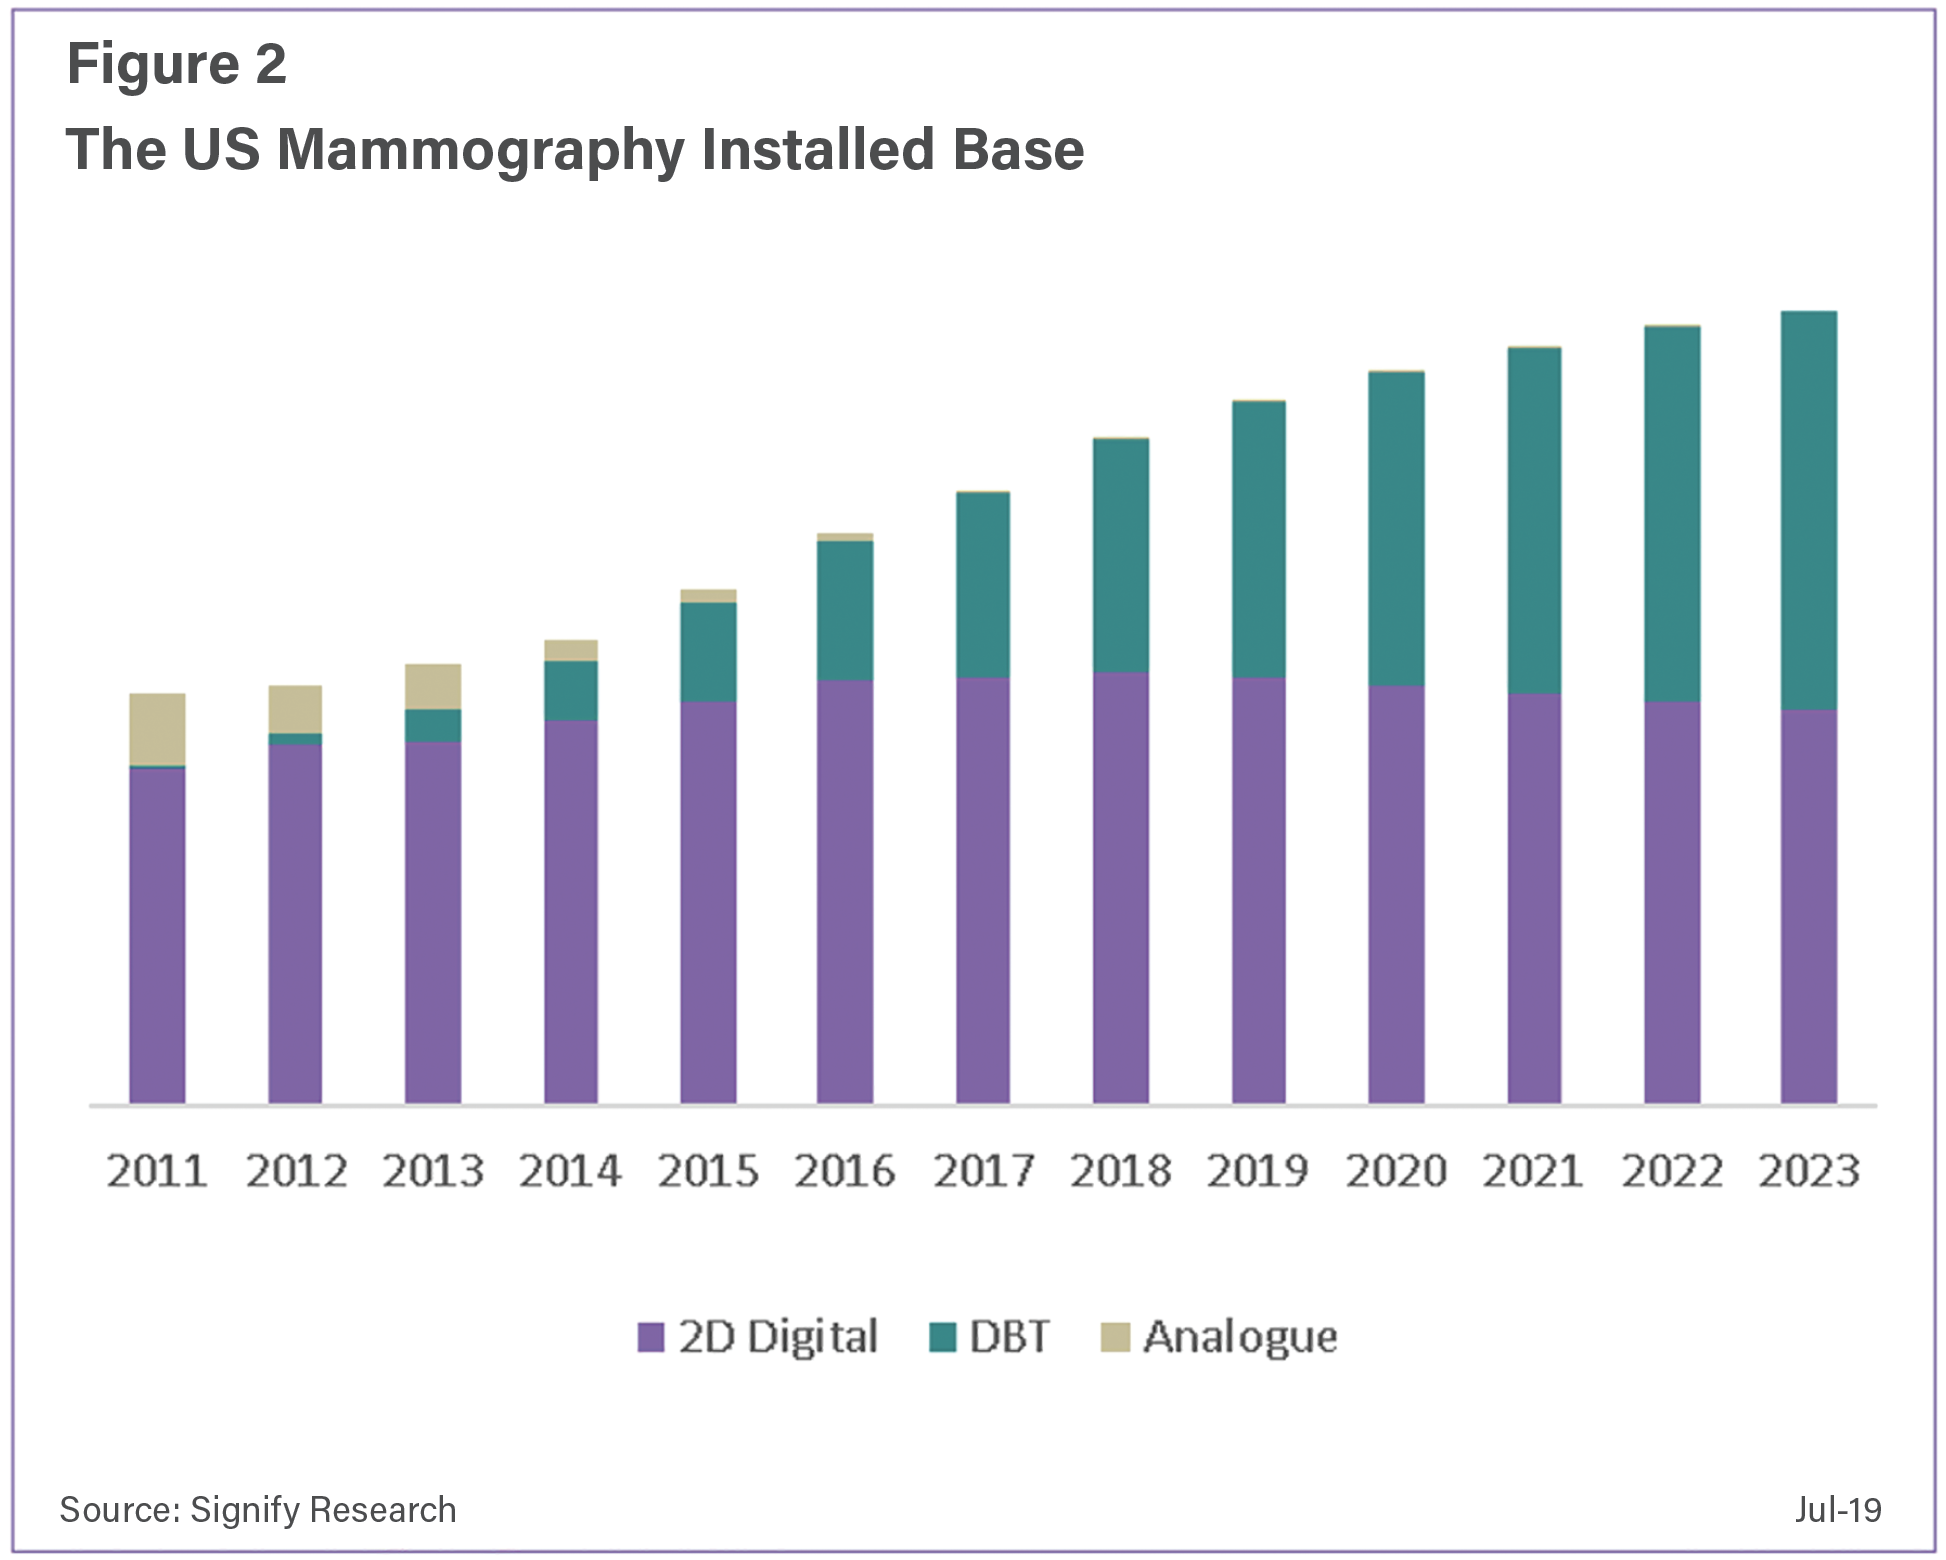 Since 2015 and the initial drive in adoption of DBT, the number of new units installed in the U.S. has been growing.